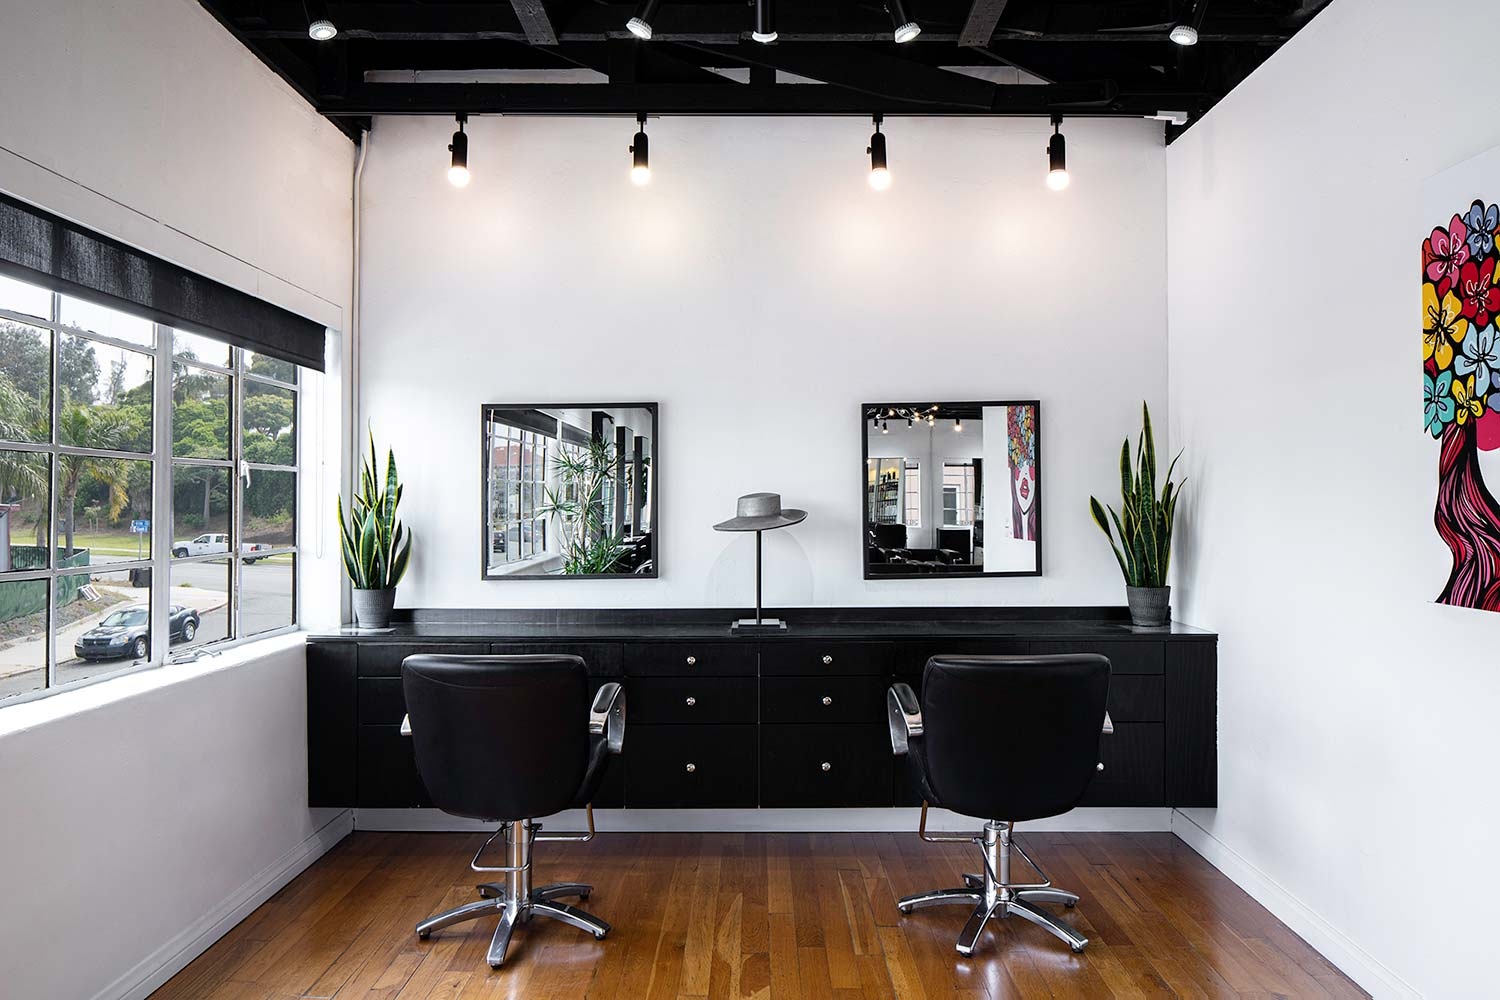 Increase Product Sales at Your Hair Salon - Stranded Media